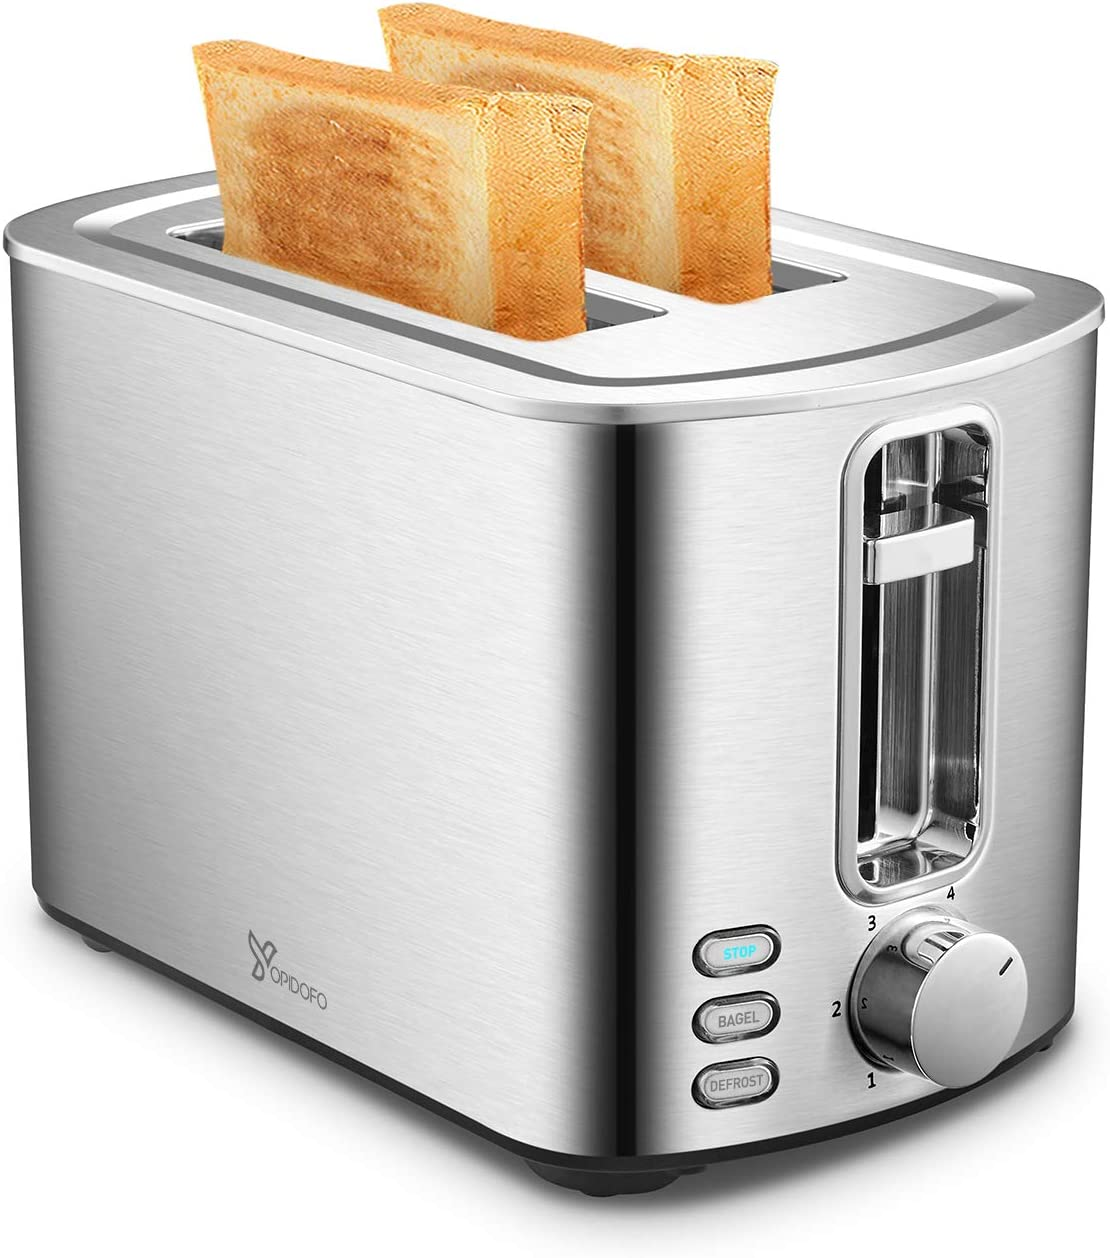 Toaster 2 Slice Stainless Steel Toaster with 6 Bread Shade Setting and Bagel, Cancel, Defrost Function for Bread Waffles Muffins